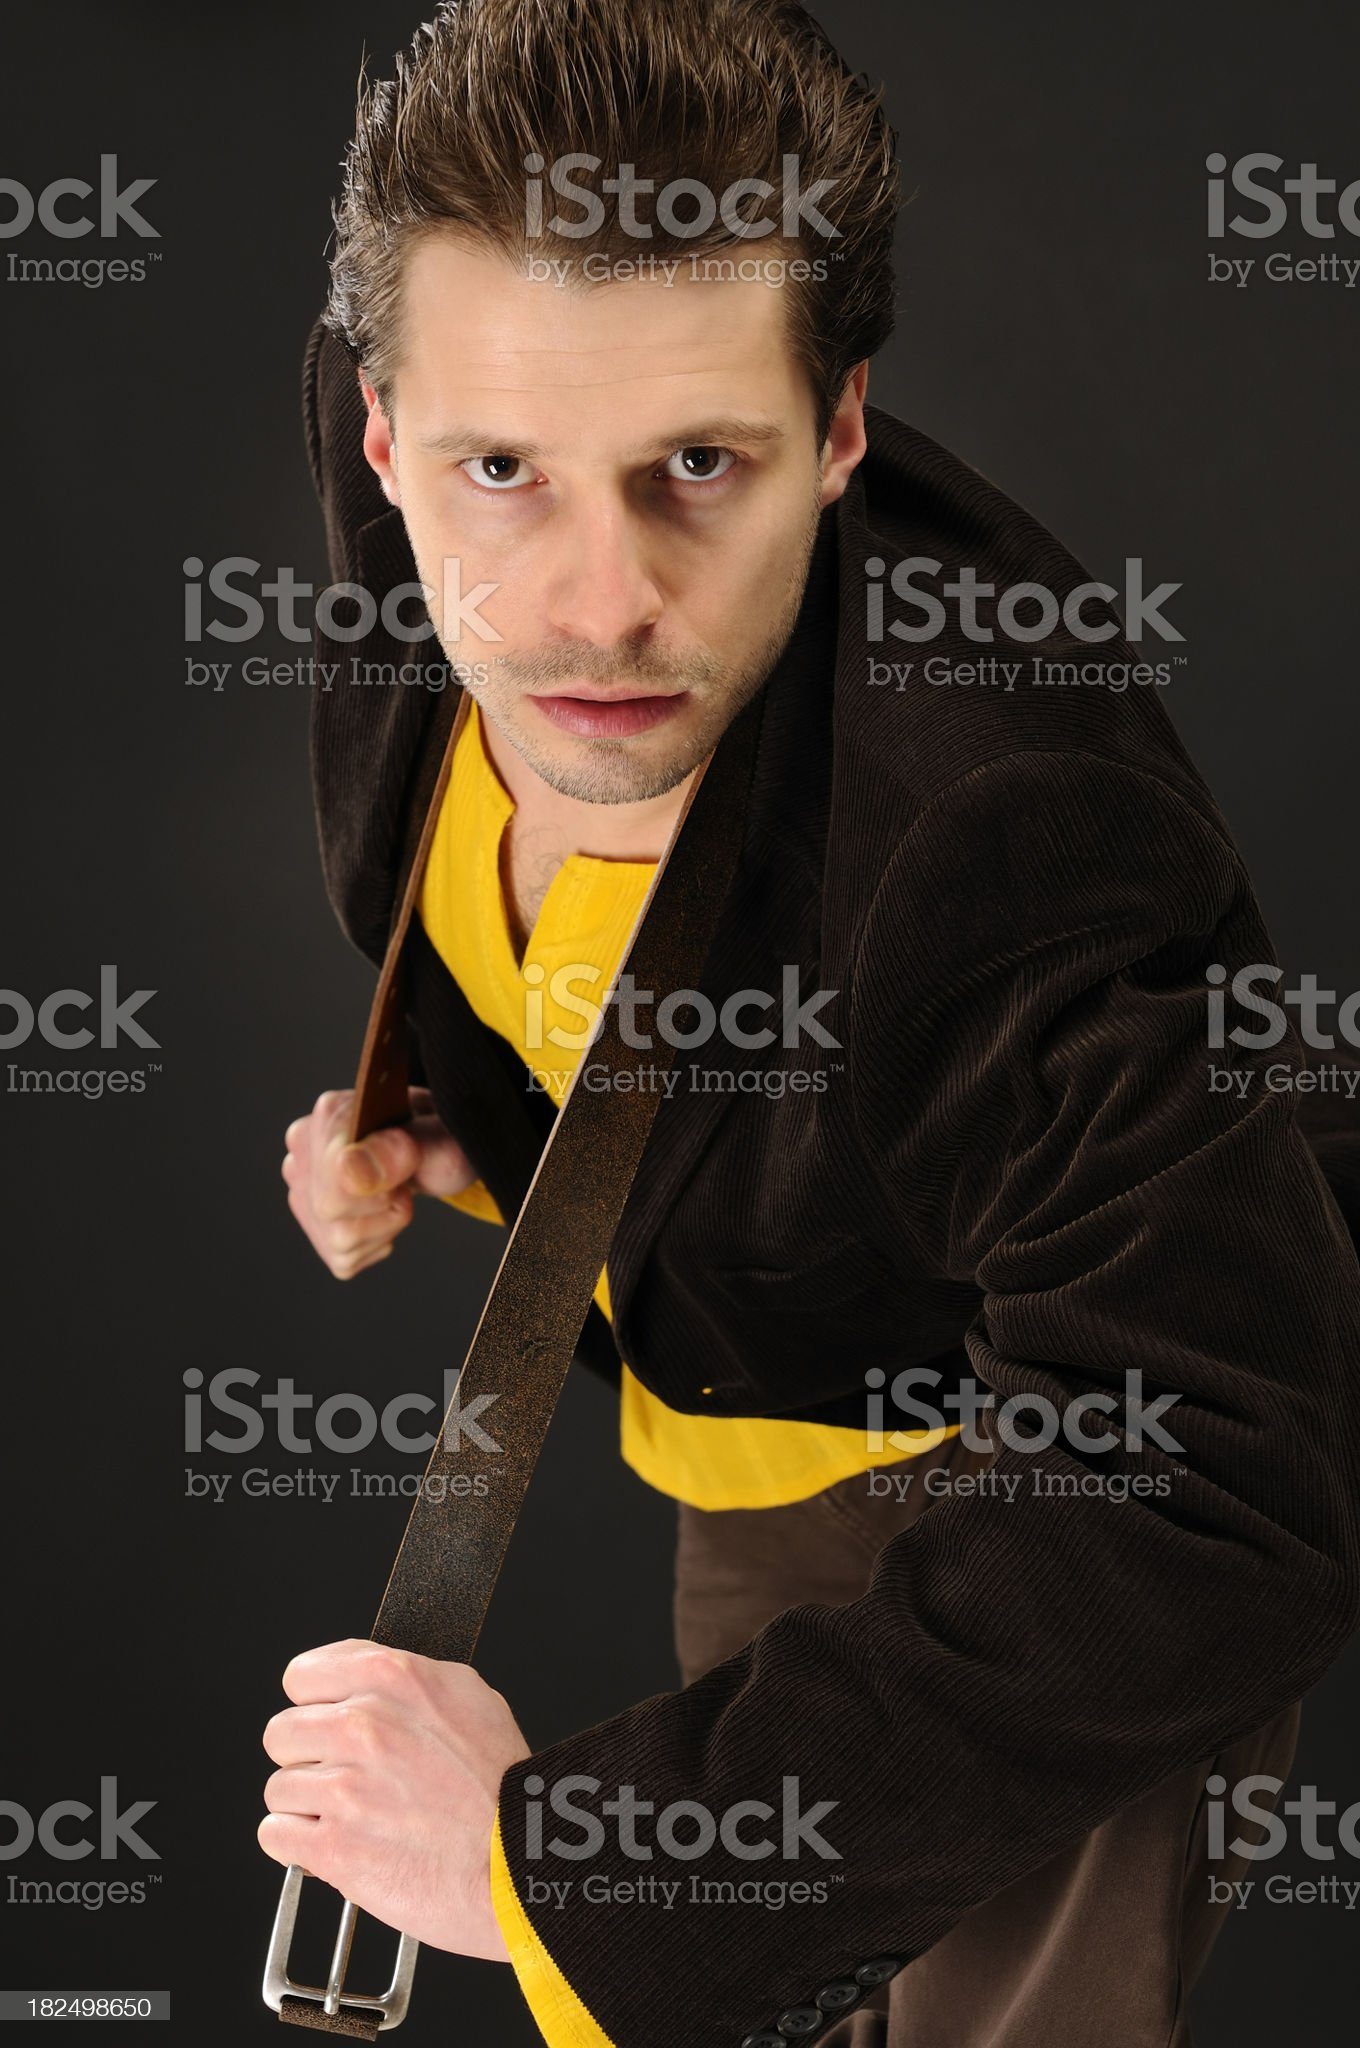 Attractive young man with jacket and belt royalty-free stock photo